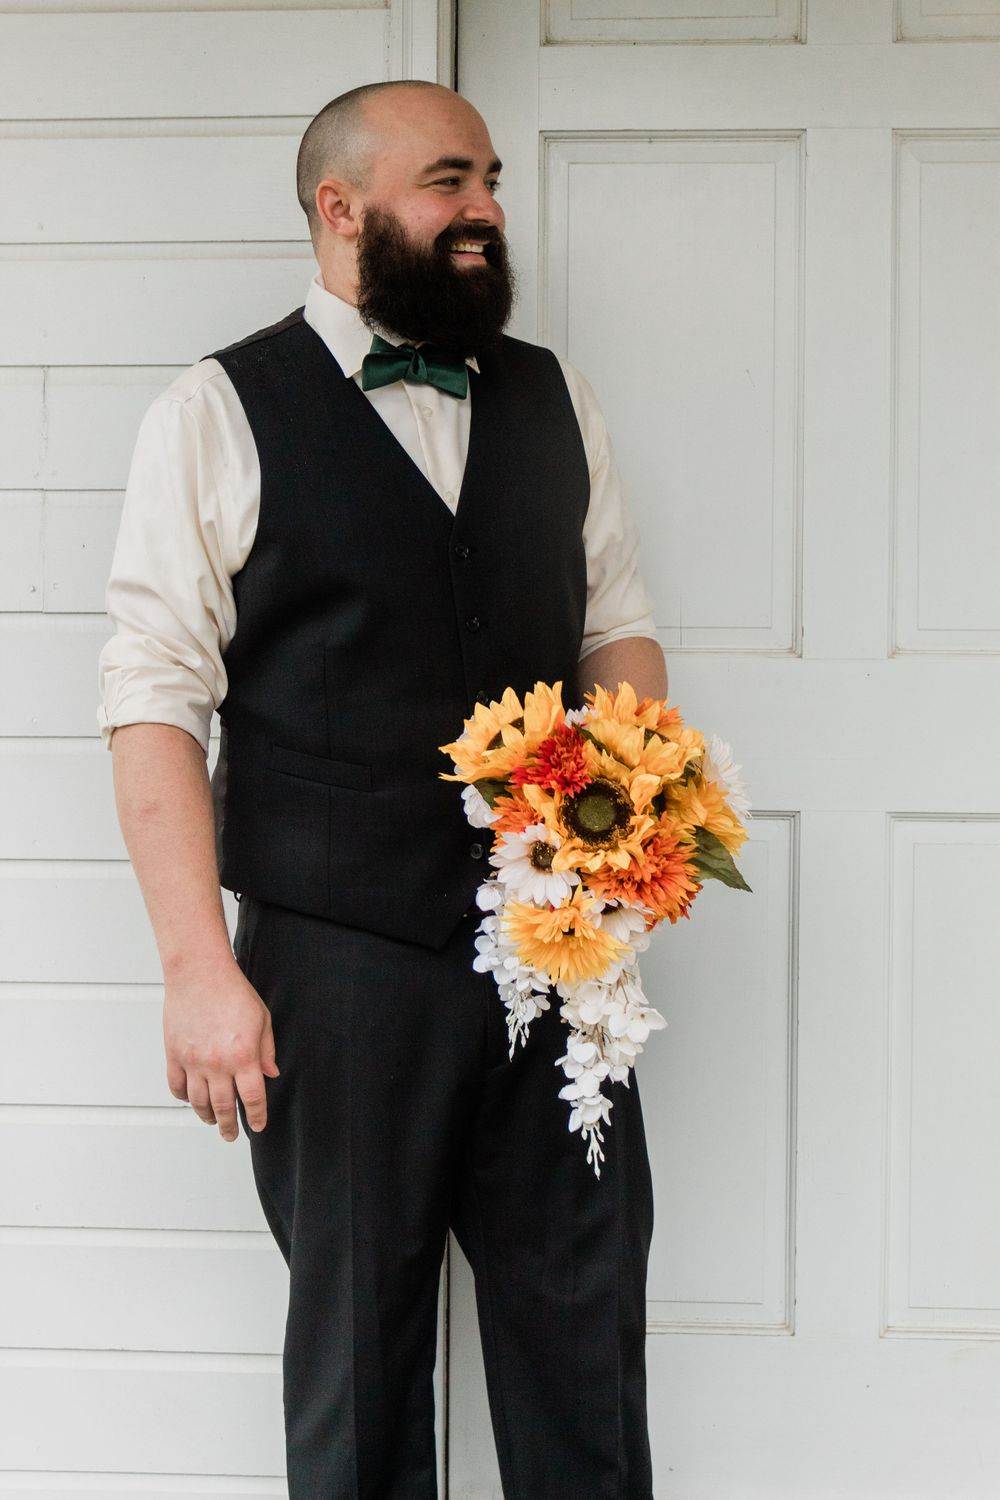 Groom holding bouquet wedding day portraits Bowdon GA 2020 Wedding